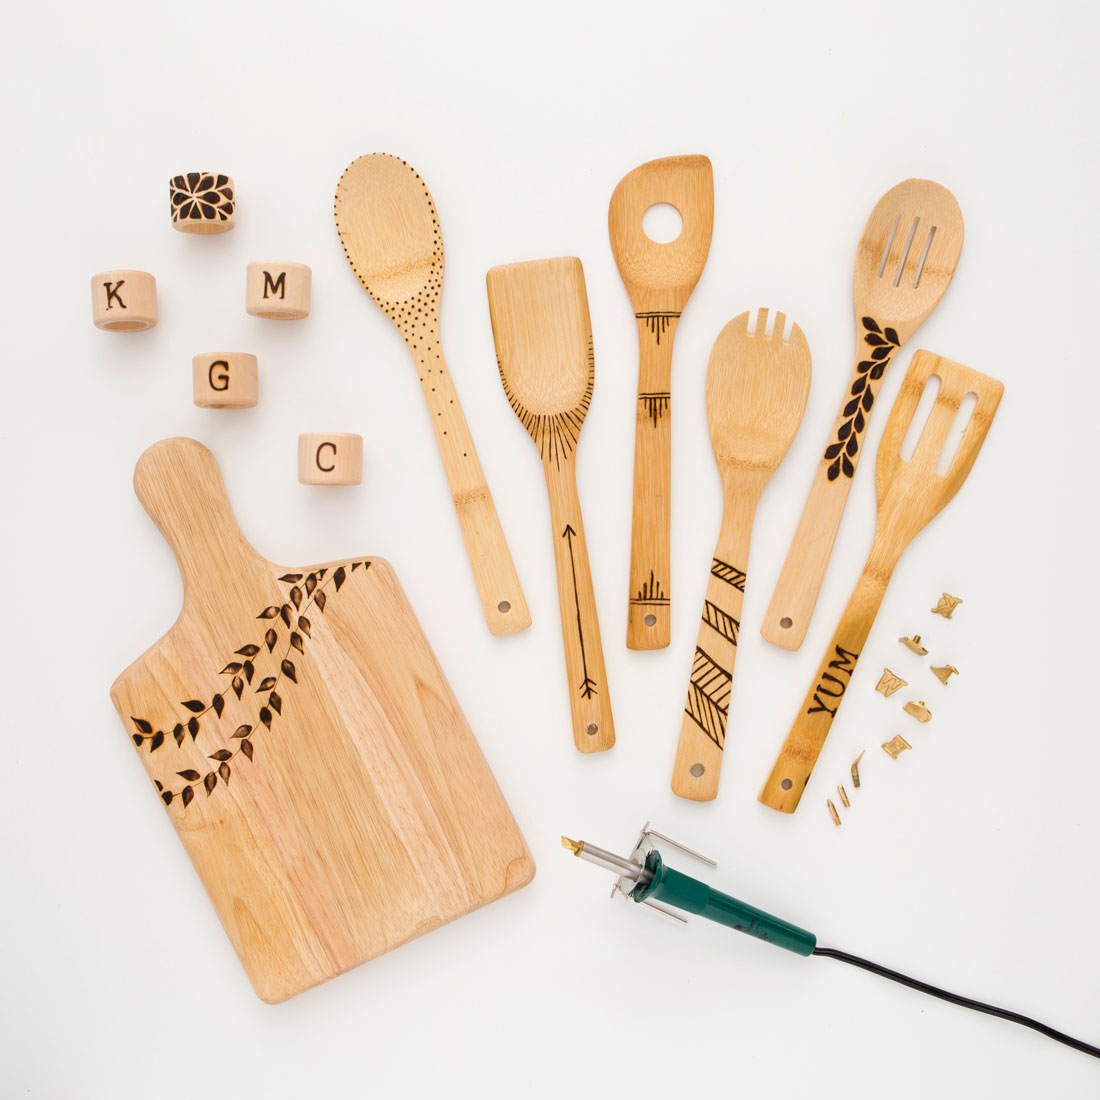 DIY engraved wooden utensils